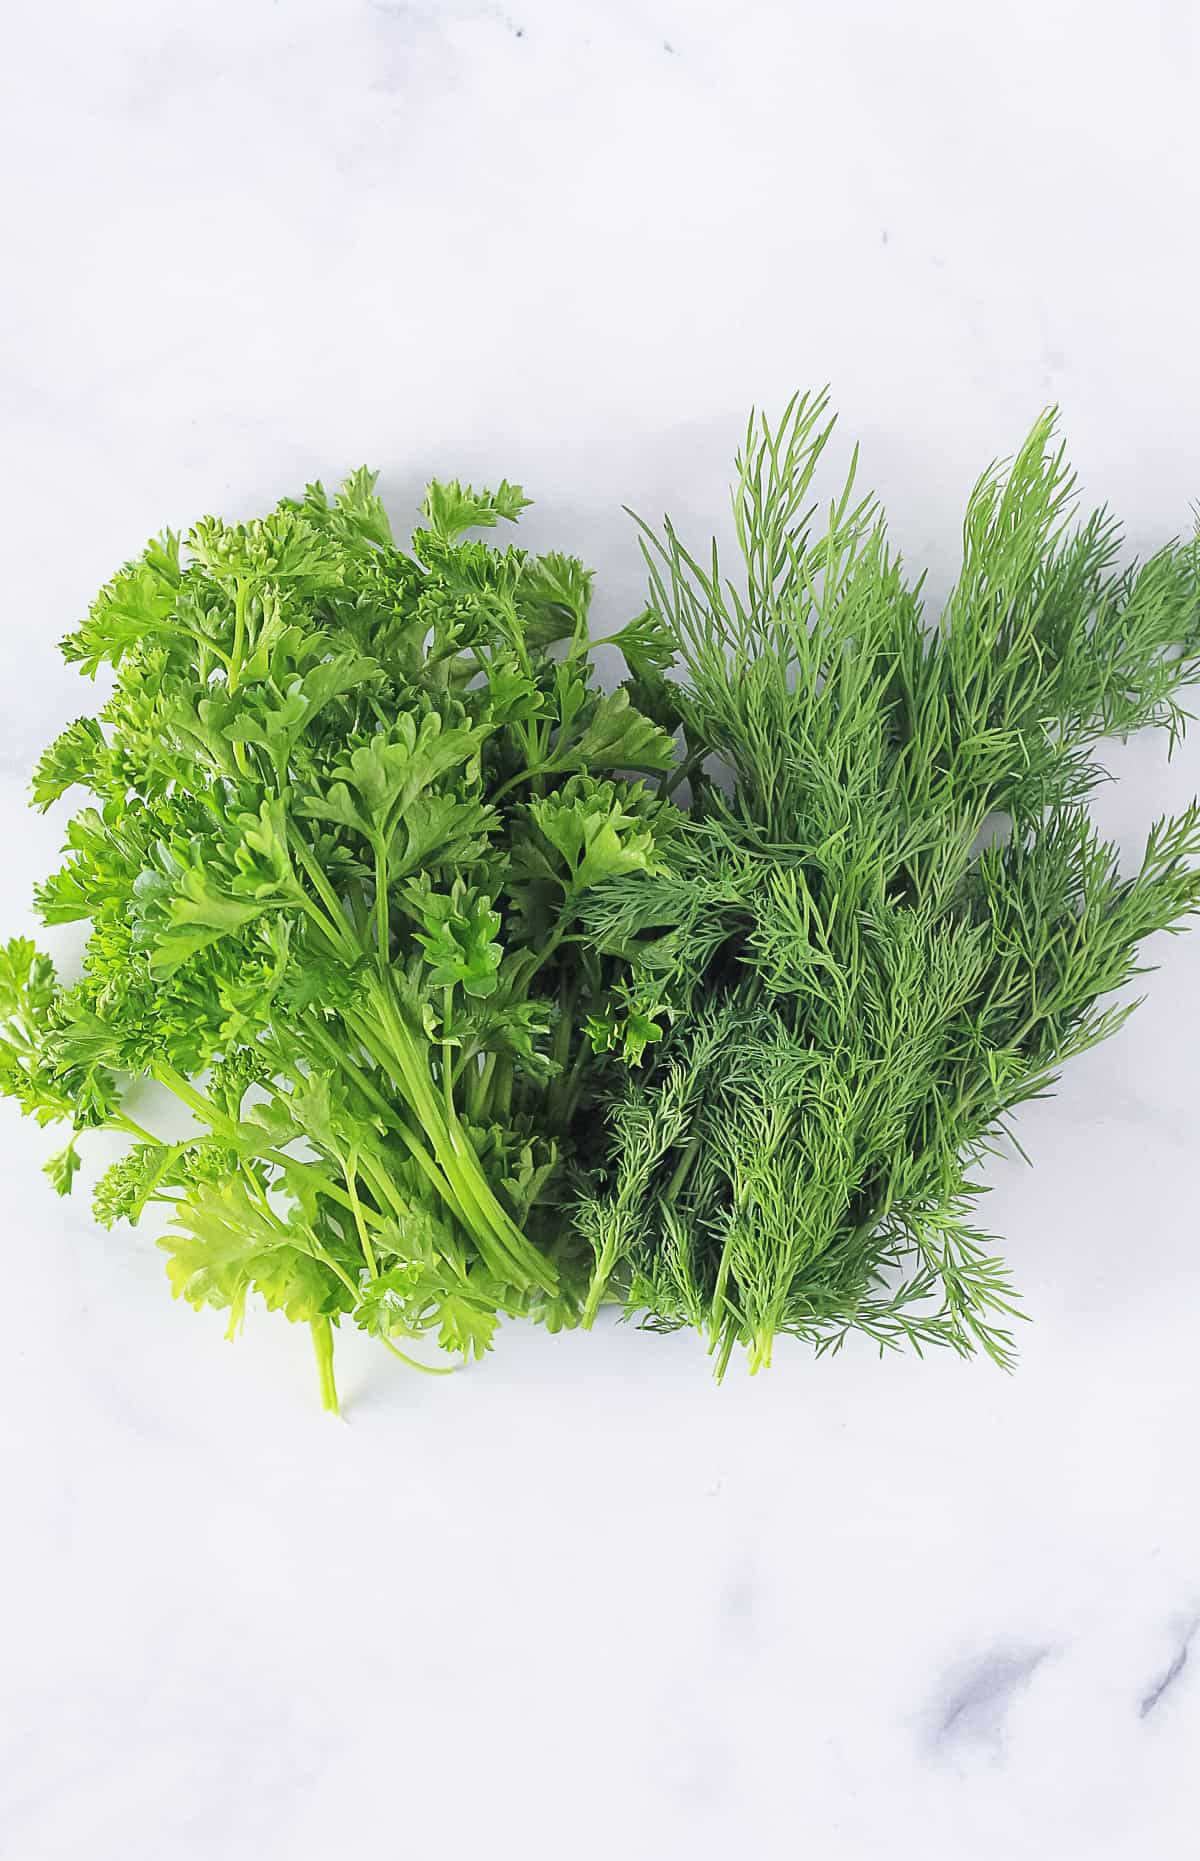 A bunch of fresh parsley and a bunch of fresh dill laying together.